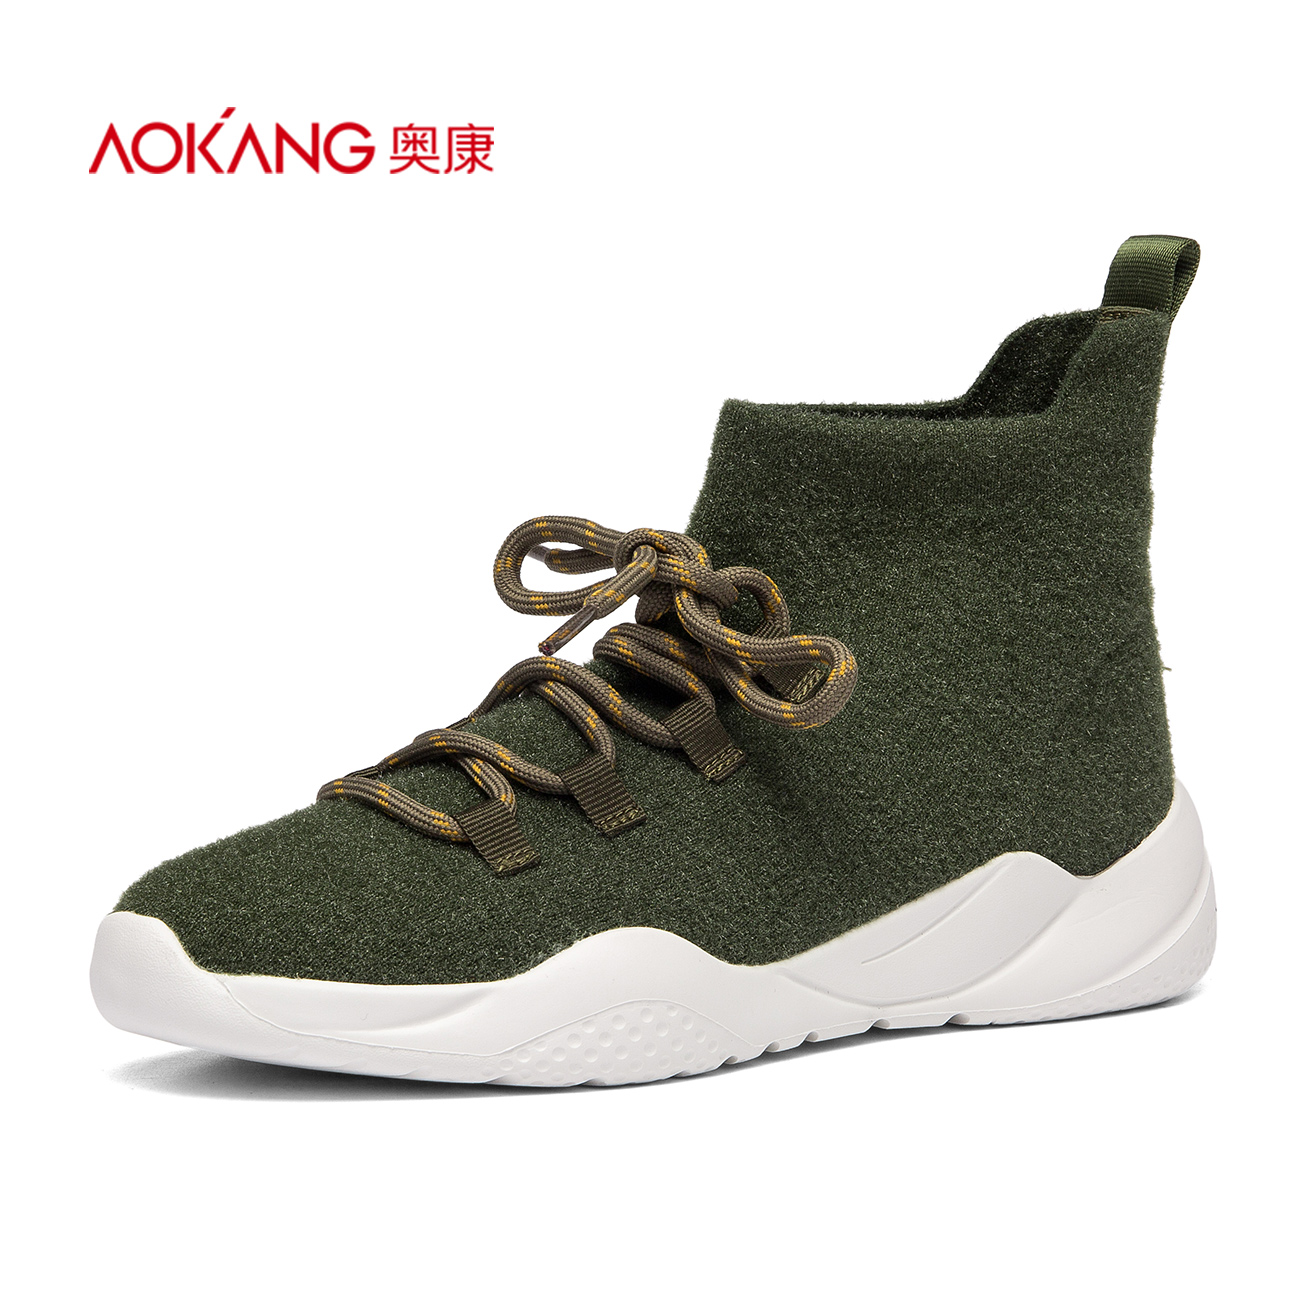 [AOKANG] women's shoes are round and fly up to fashion women's shoes in autumn.